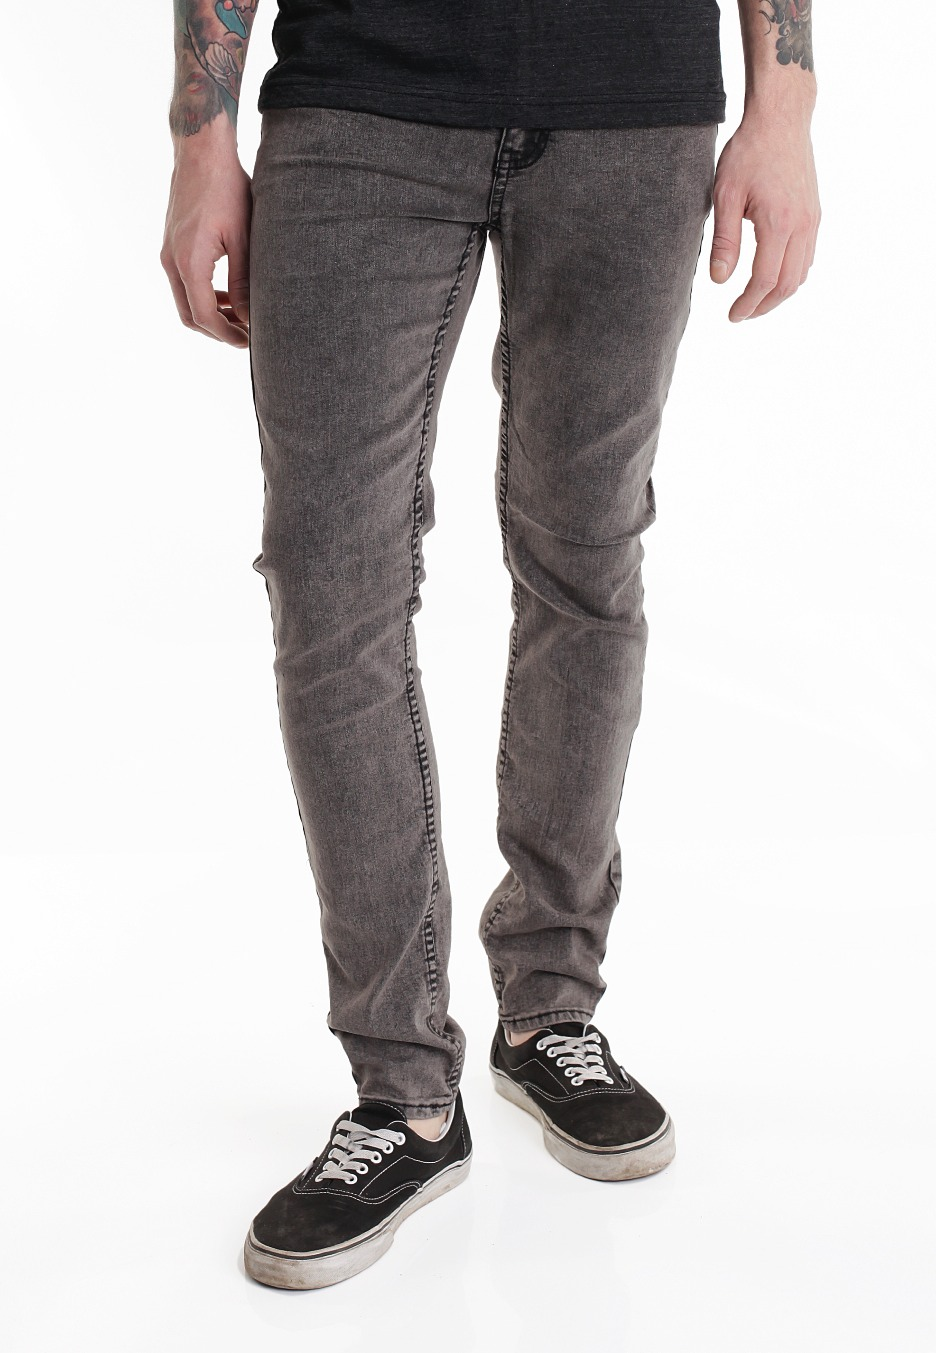 Cheap Monday - Tight Grey Black - Jeans - Impericon.com UK